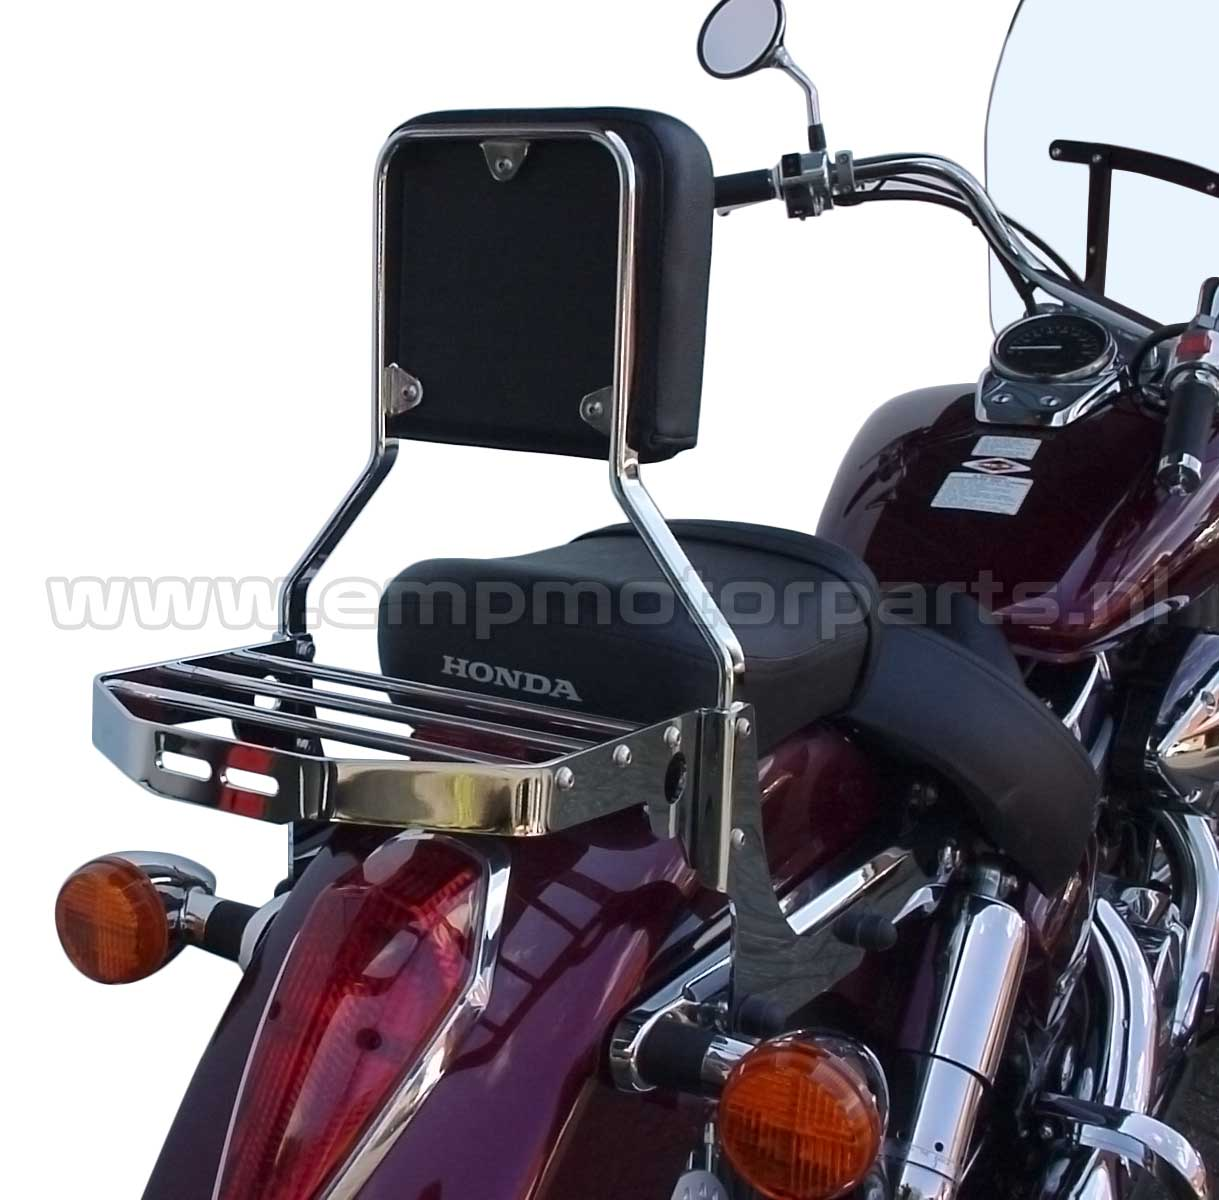 Bagagedrager Double Notch The carrier fits all models EMP sissy bars, luggage carrier sets and handgrip bar sets with the exception of sissy bar Basic and Basic Plus. (2)